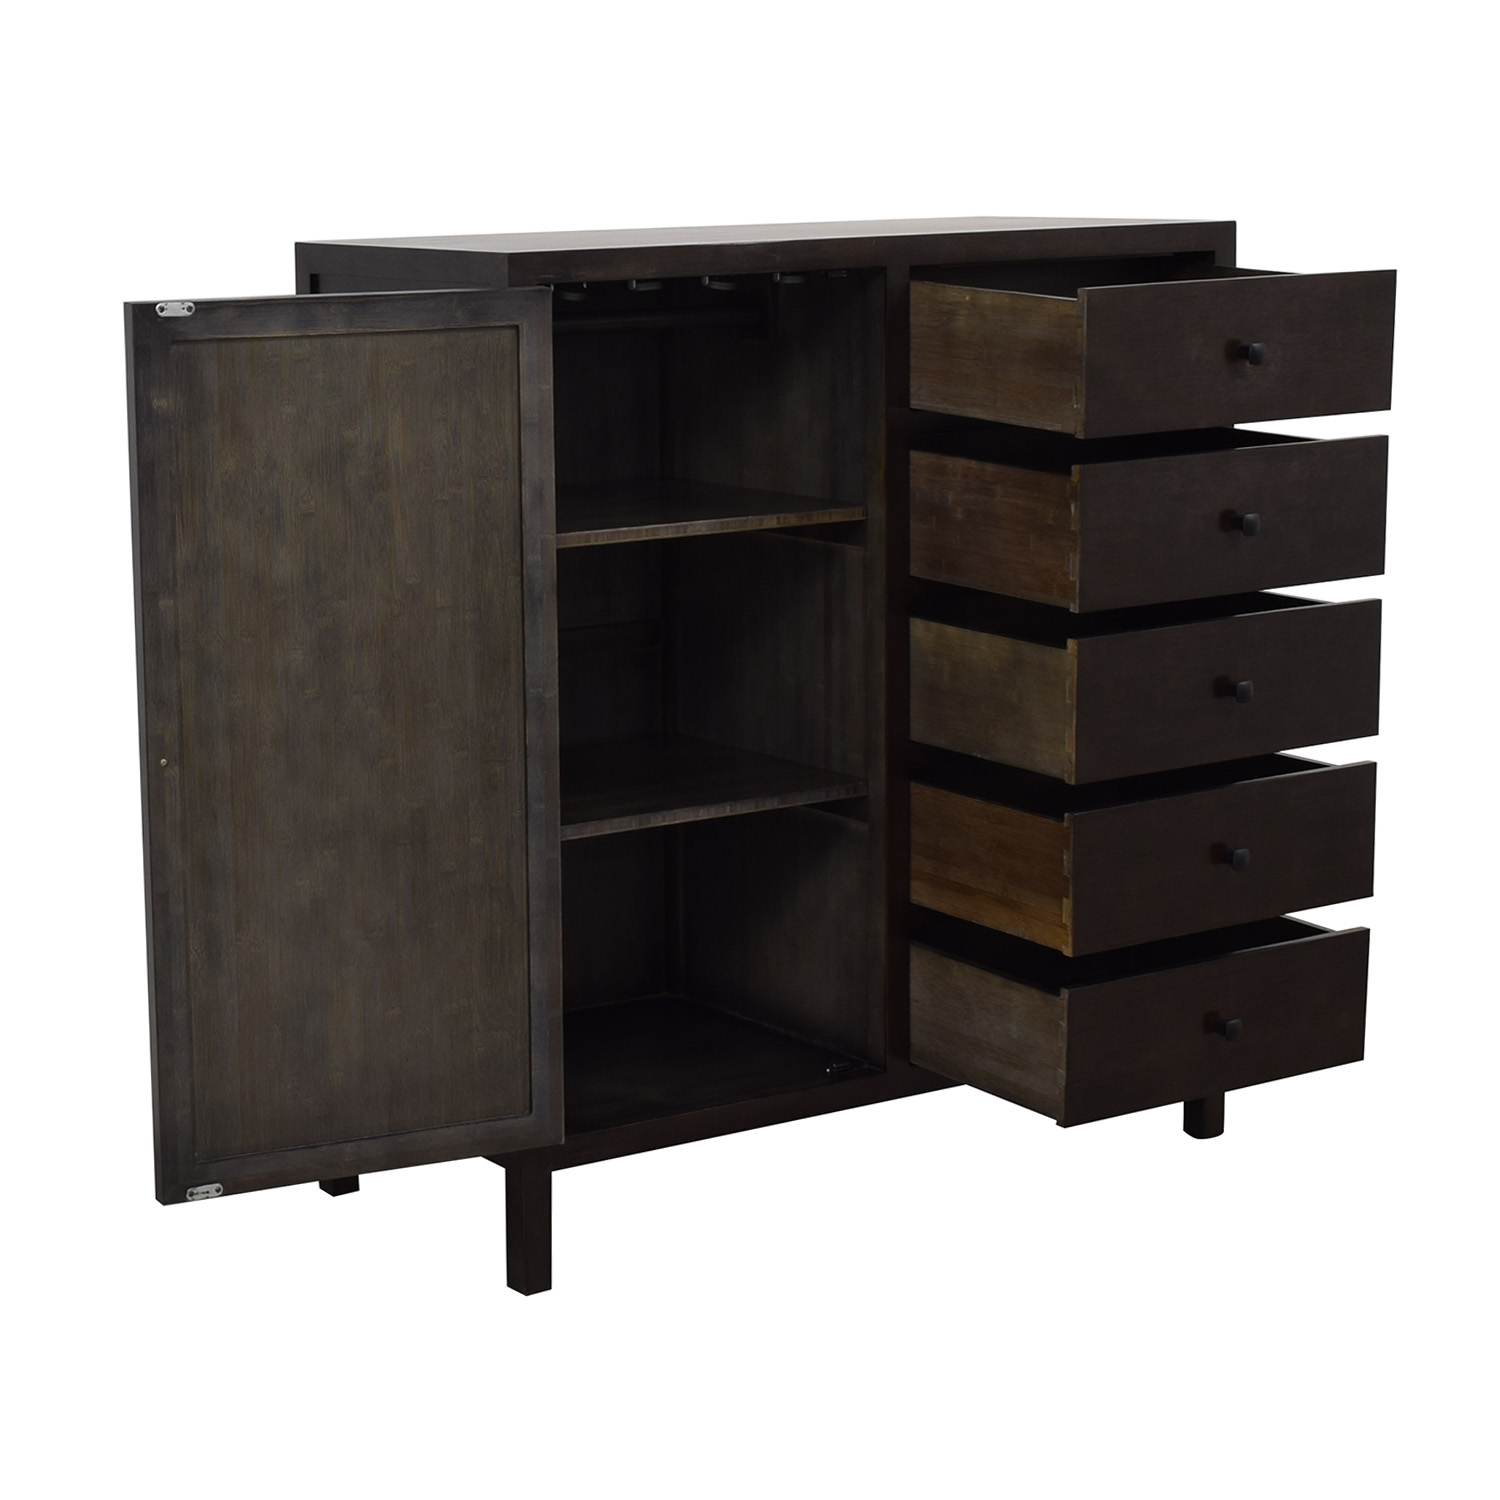 shop Crate & Barrel Maria Yee Five-Drawer Armoire Crate & Barrel Storage